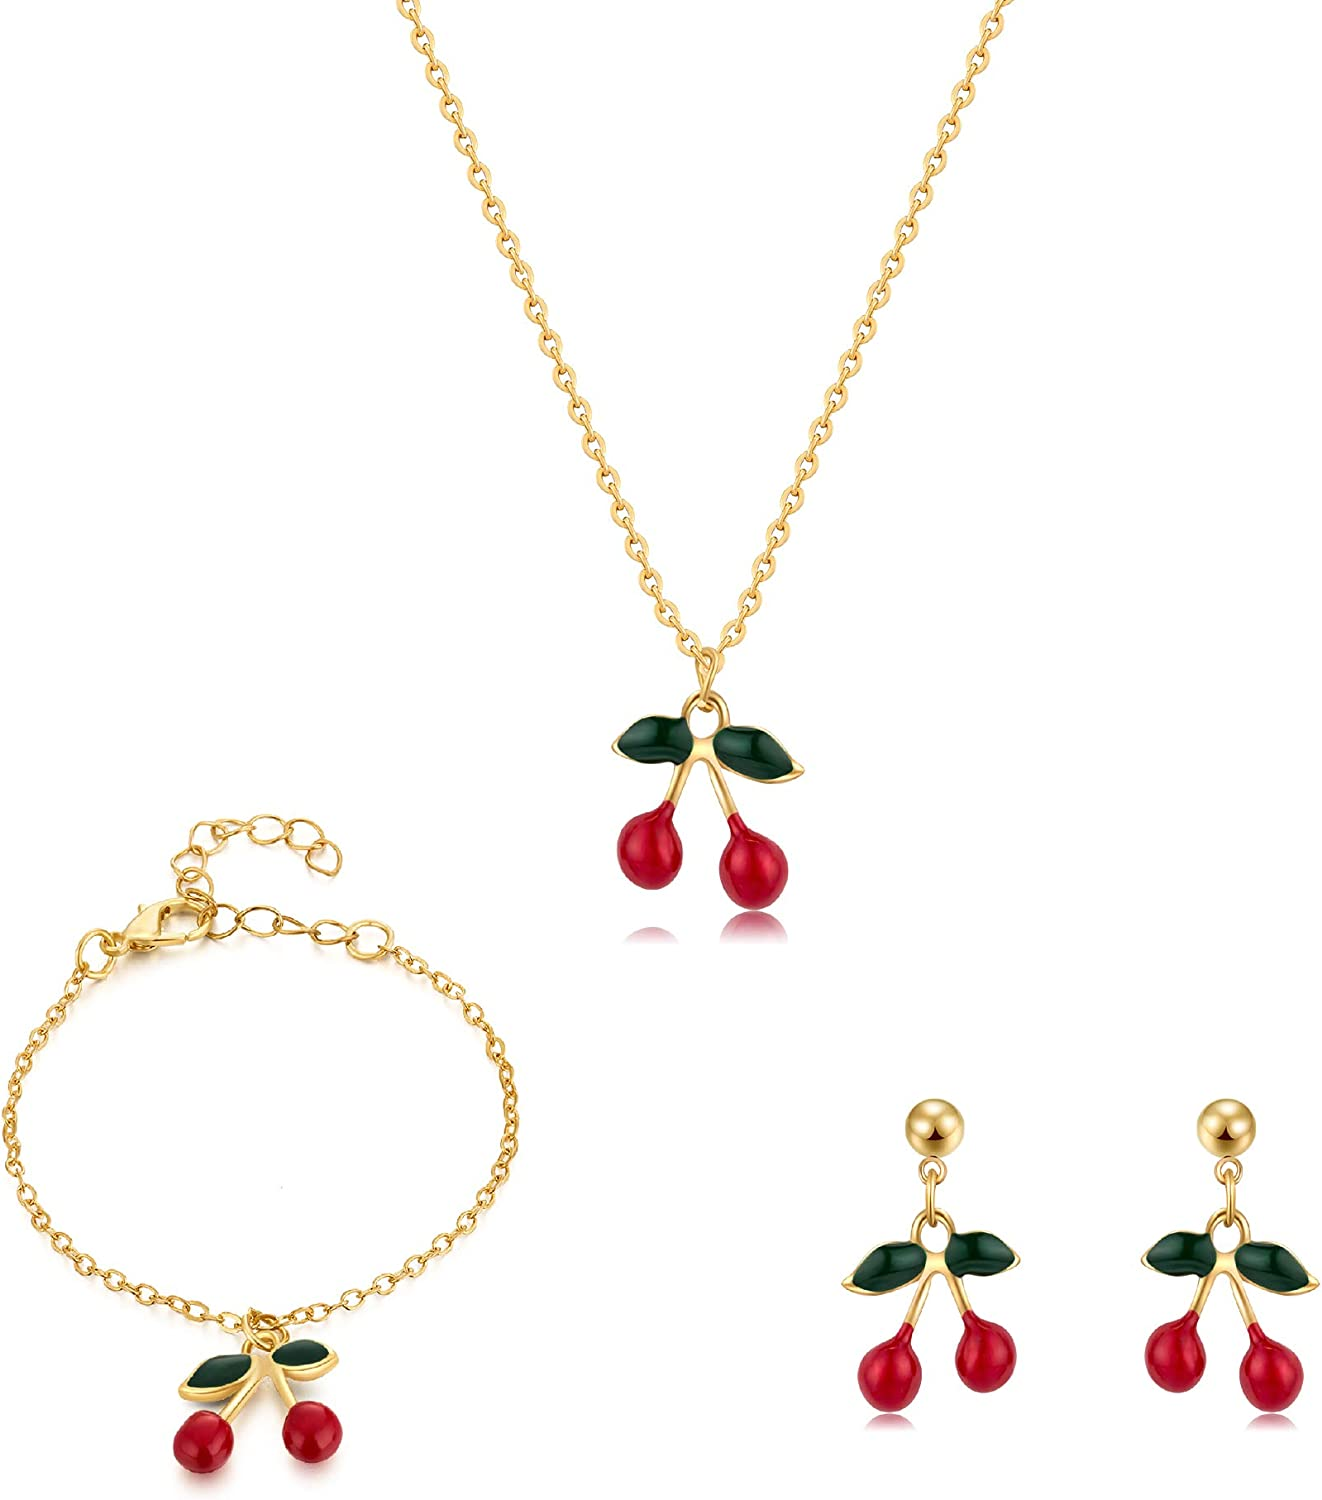 Buyless Fashion Girls And Women Cherry Jewelry Set Red Cherry Dangle Earrings Necklace And Bracelet